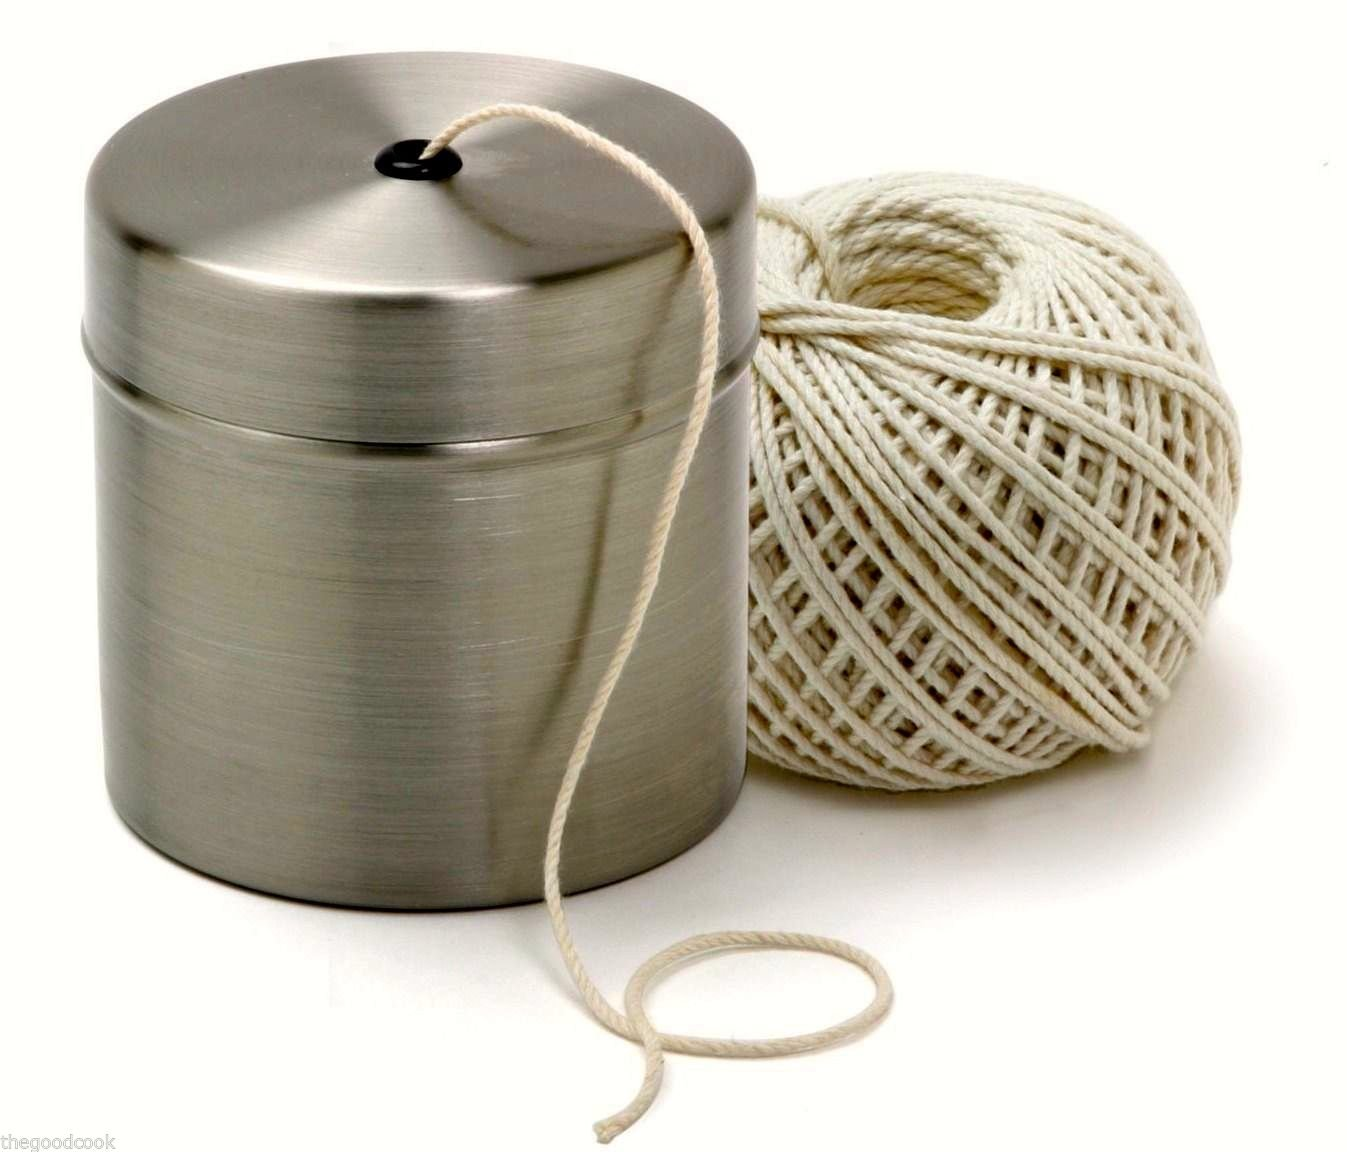 Chef Butcher Cooks Kitchen Natural Cotton Twine String w/Stainless Dispenser New